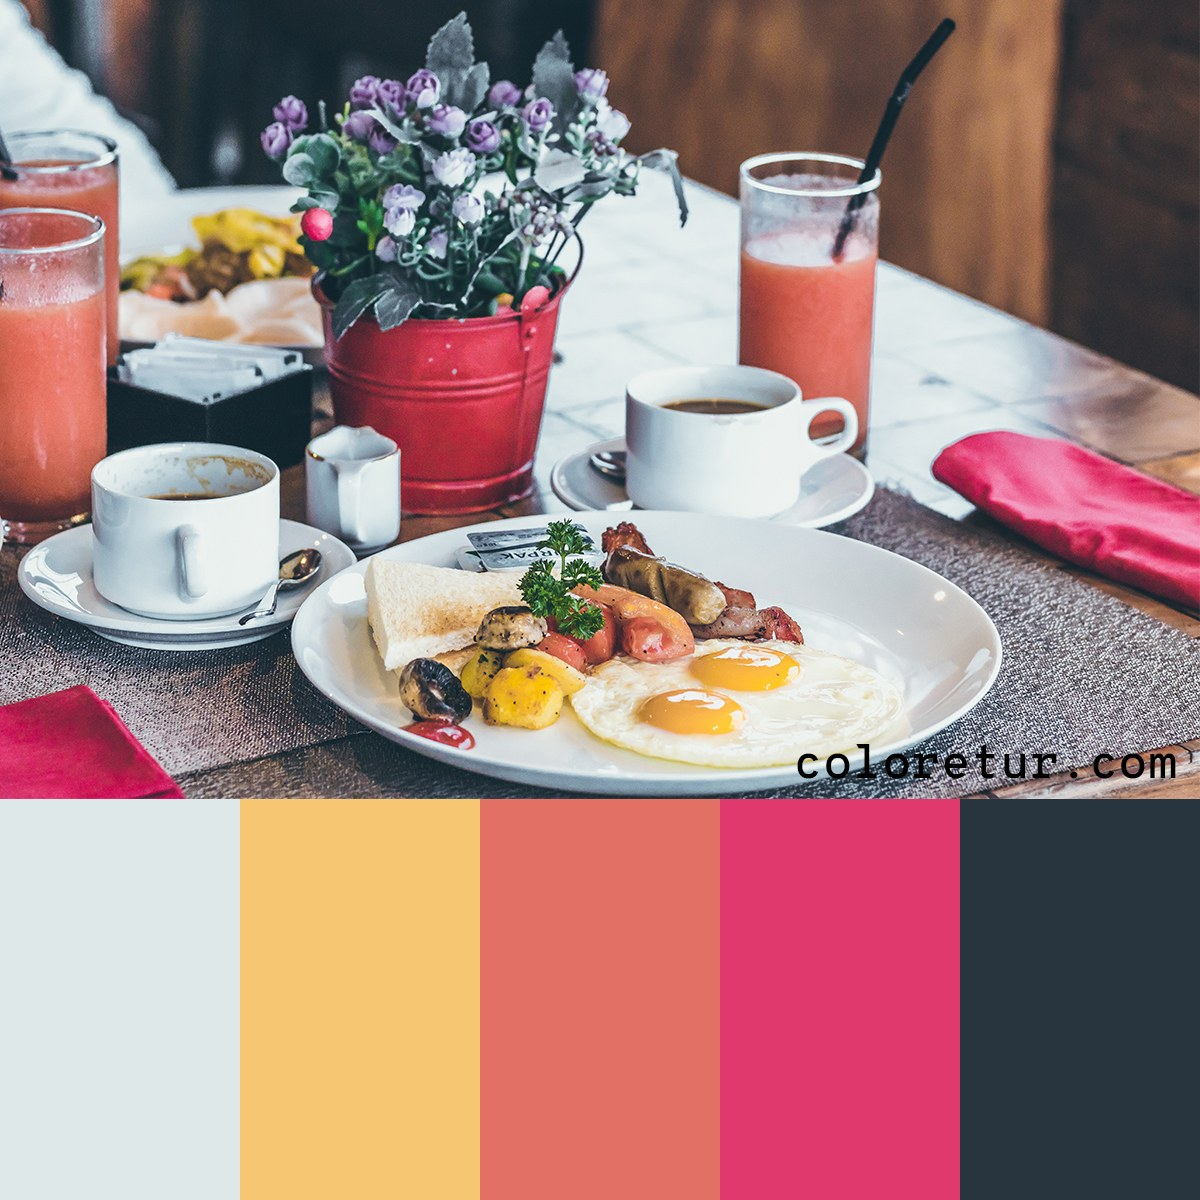 A bright color palette, with vibrant hues from a fresh meal